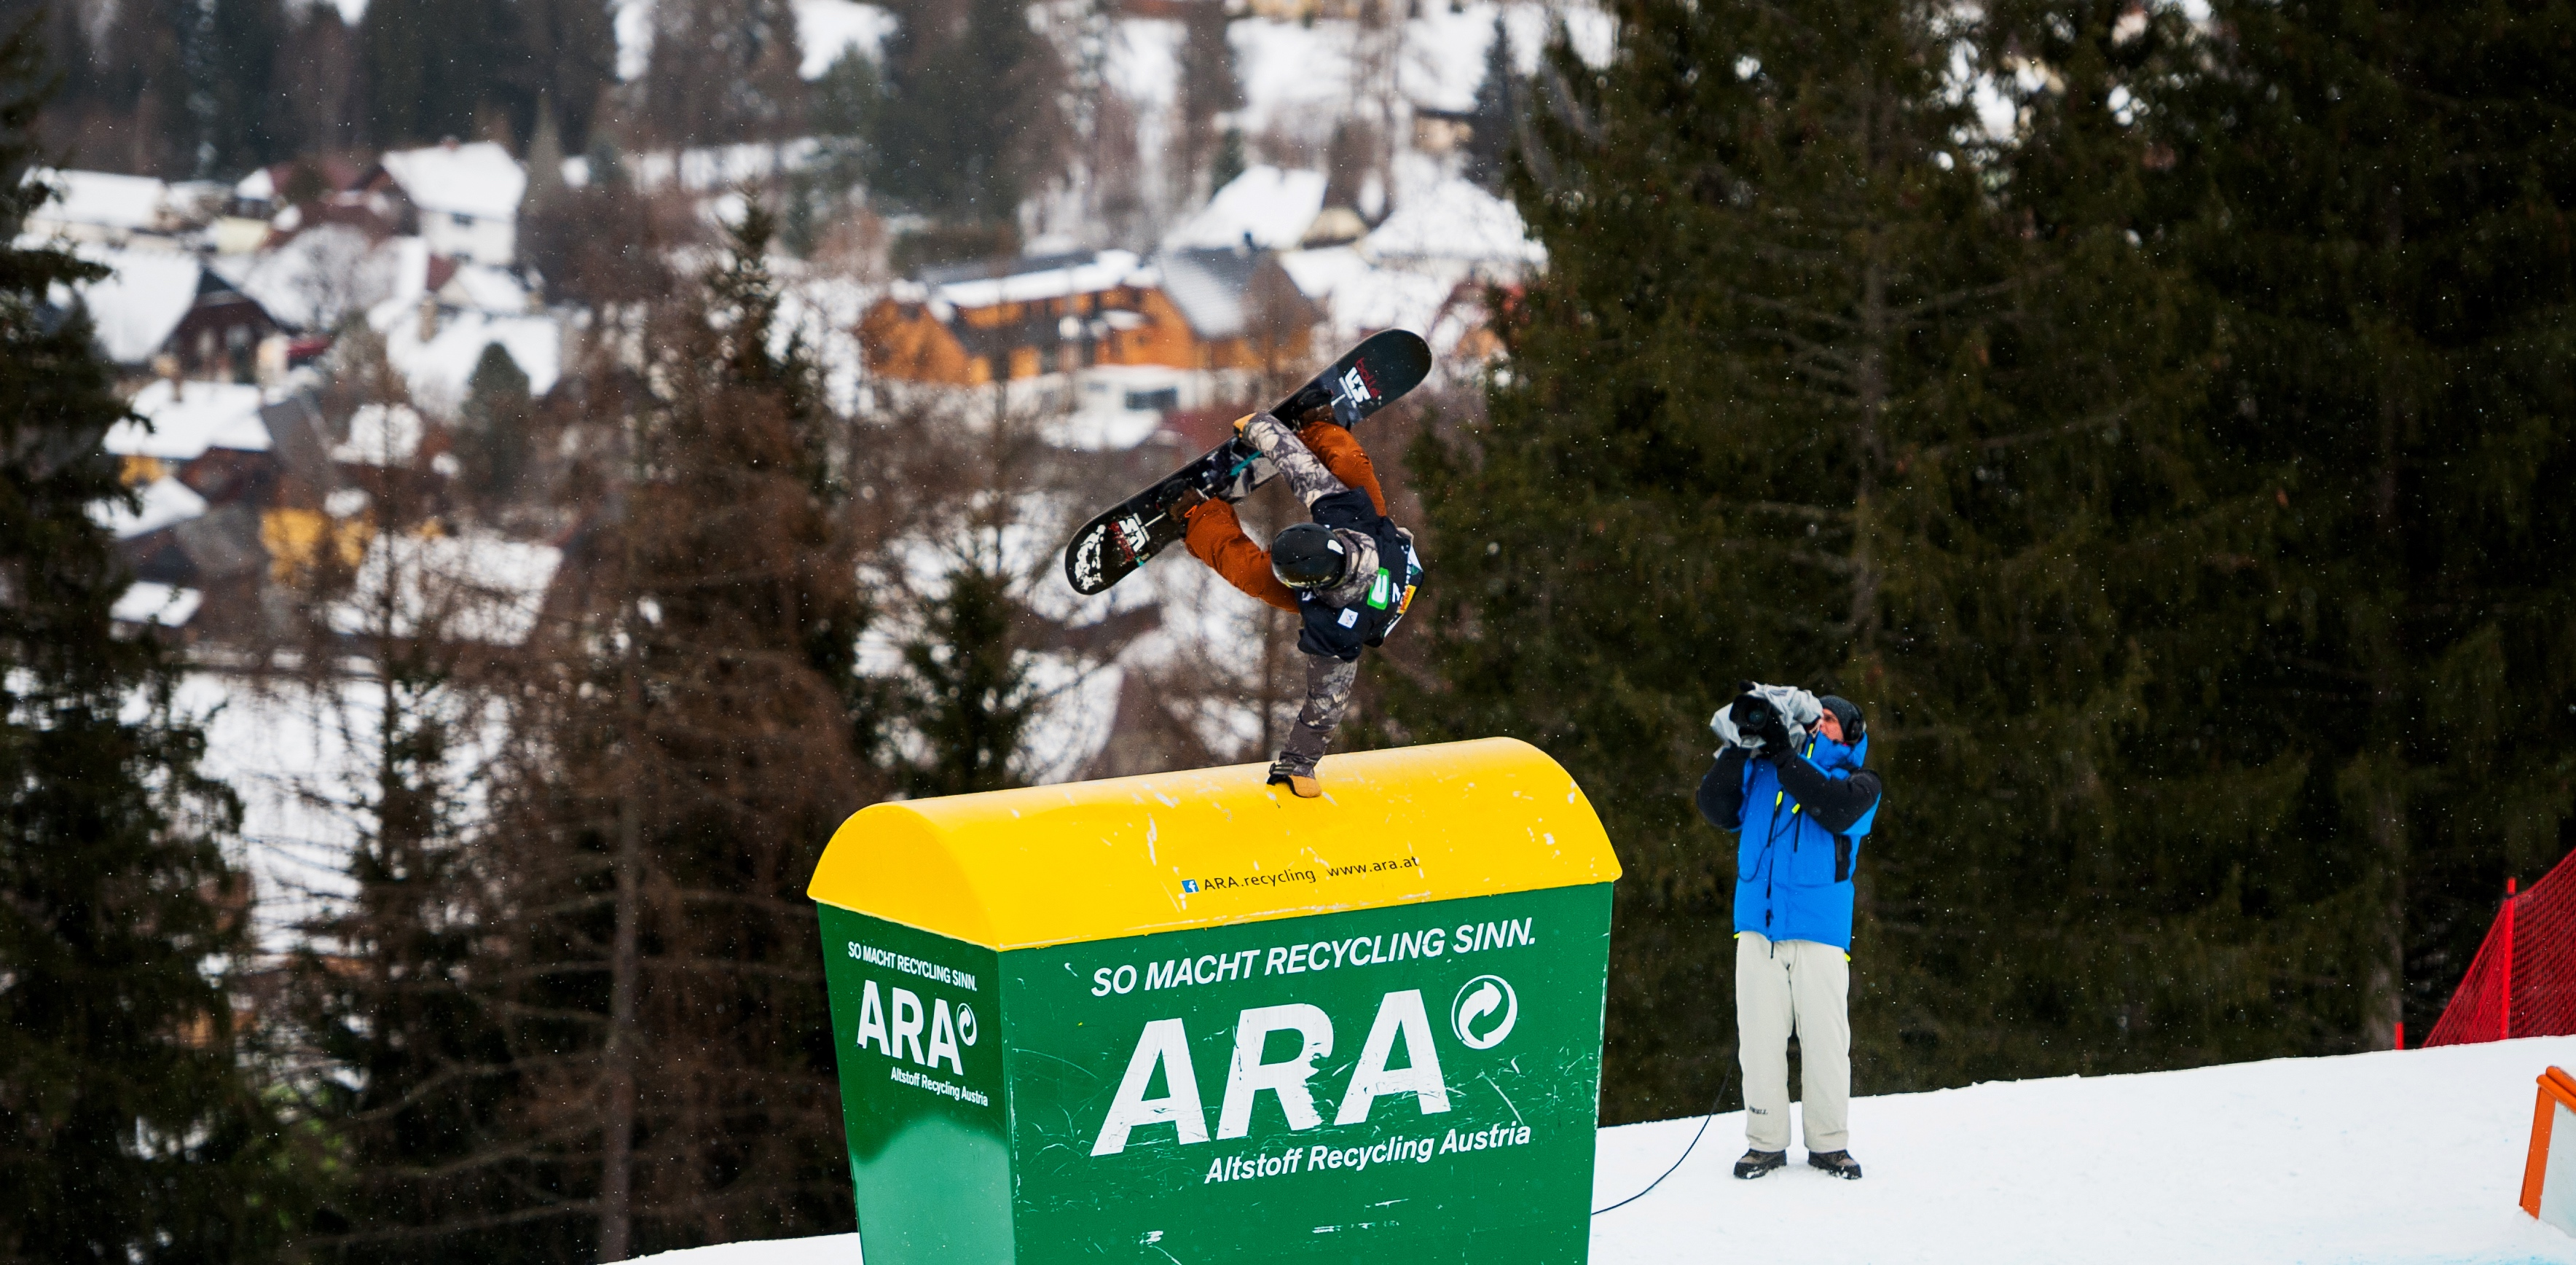 34fa33a59f0b Ryan Stassel at the 2017 Kreischberg FIS World Cup. (FIS Snowboard - Miha  Matavz)